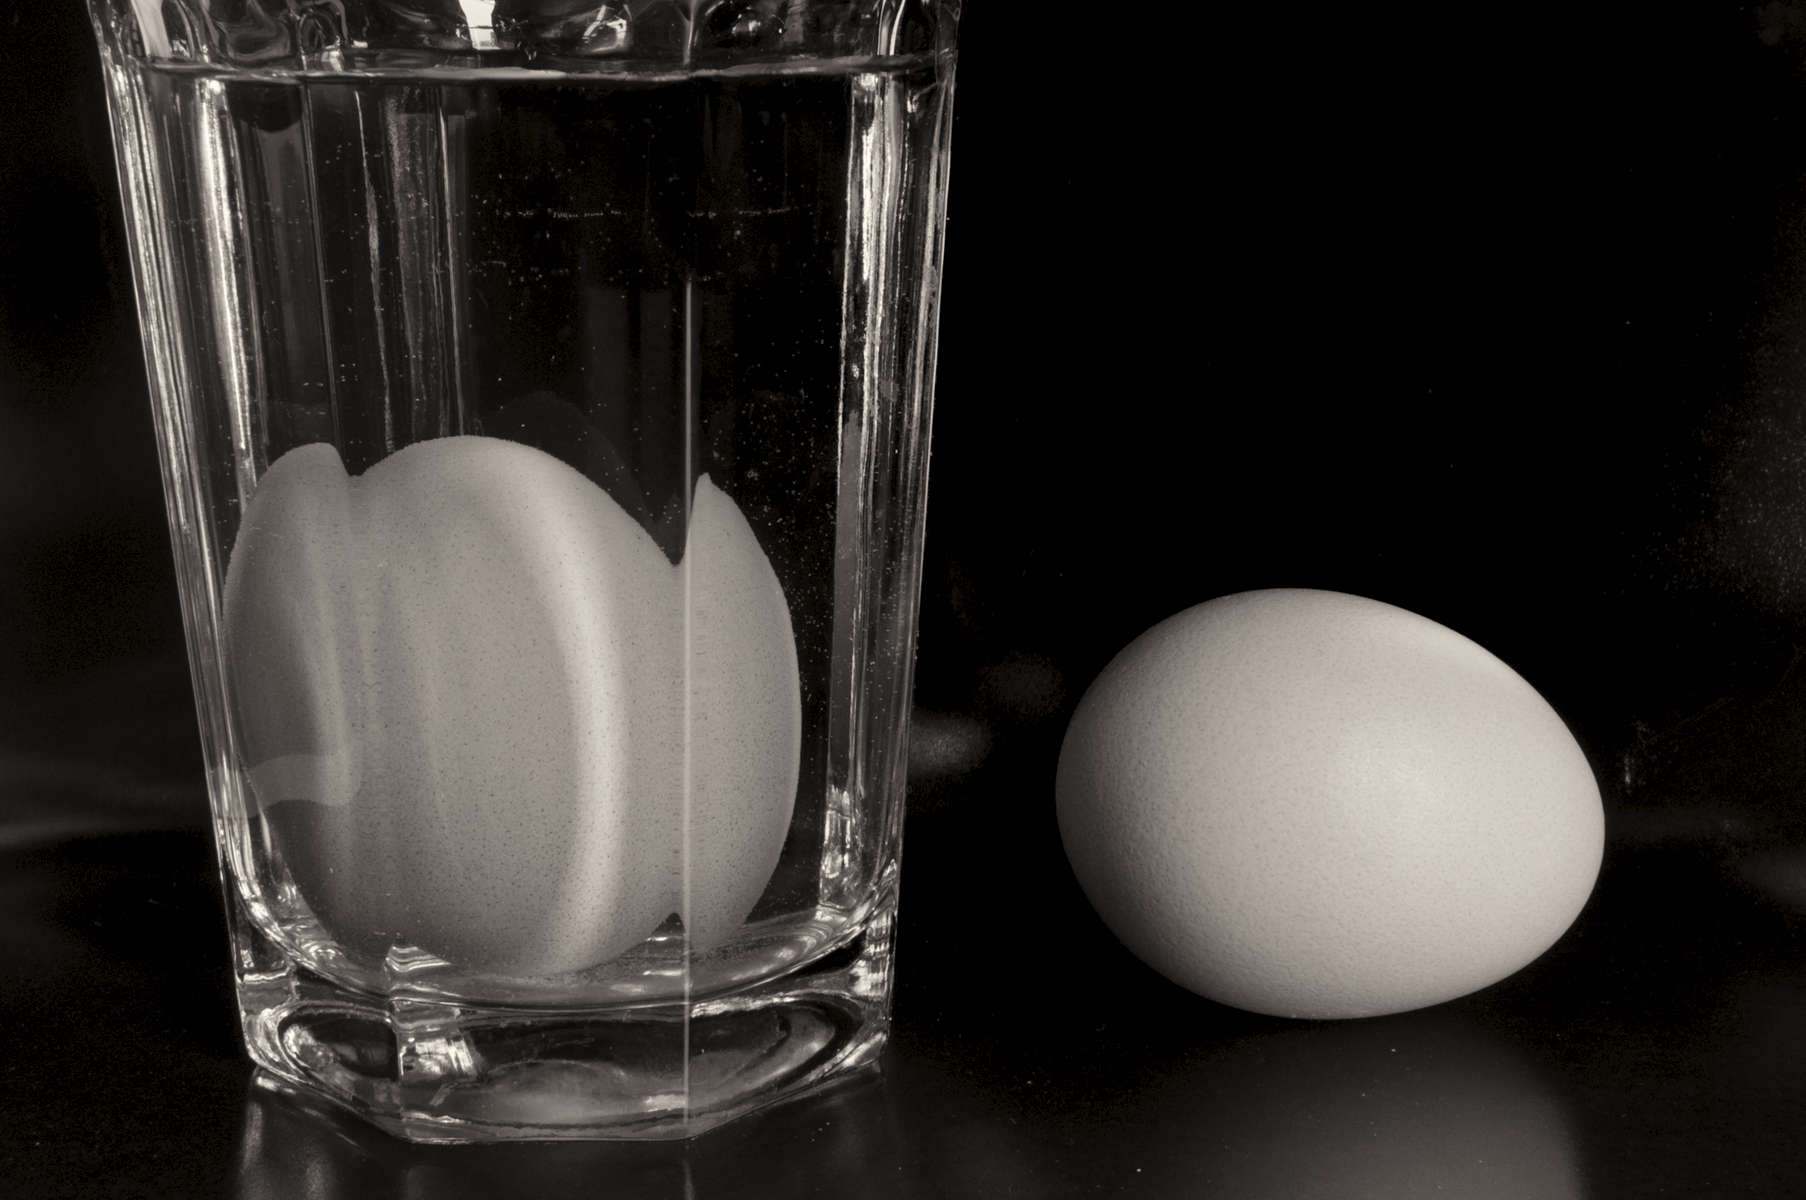 eggs_glass_egg-_1-of-1_